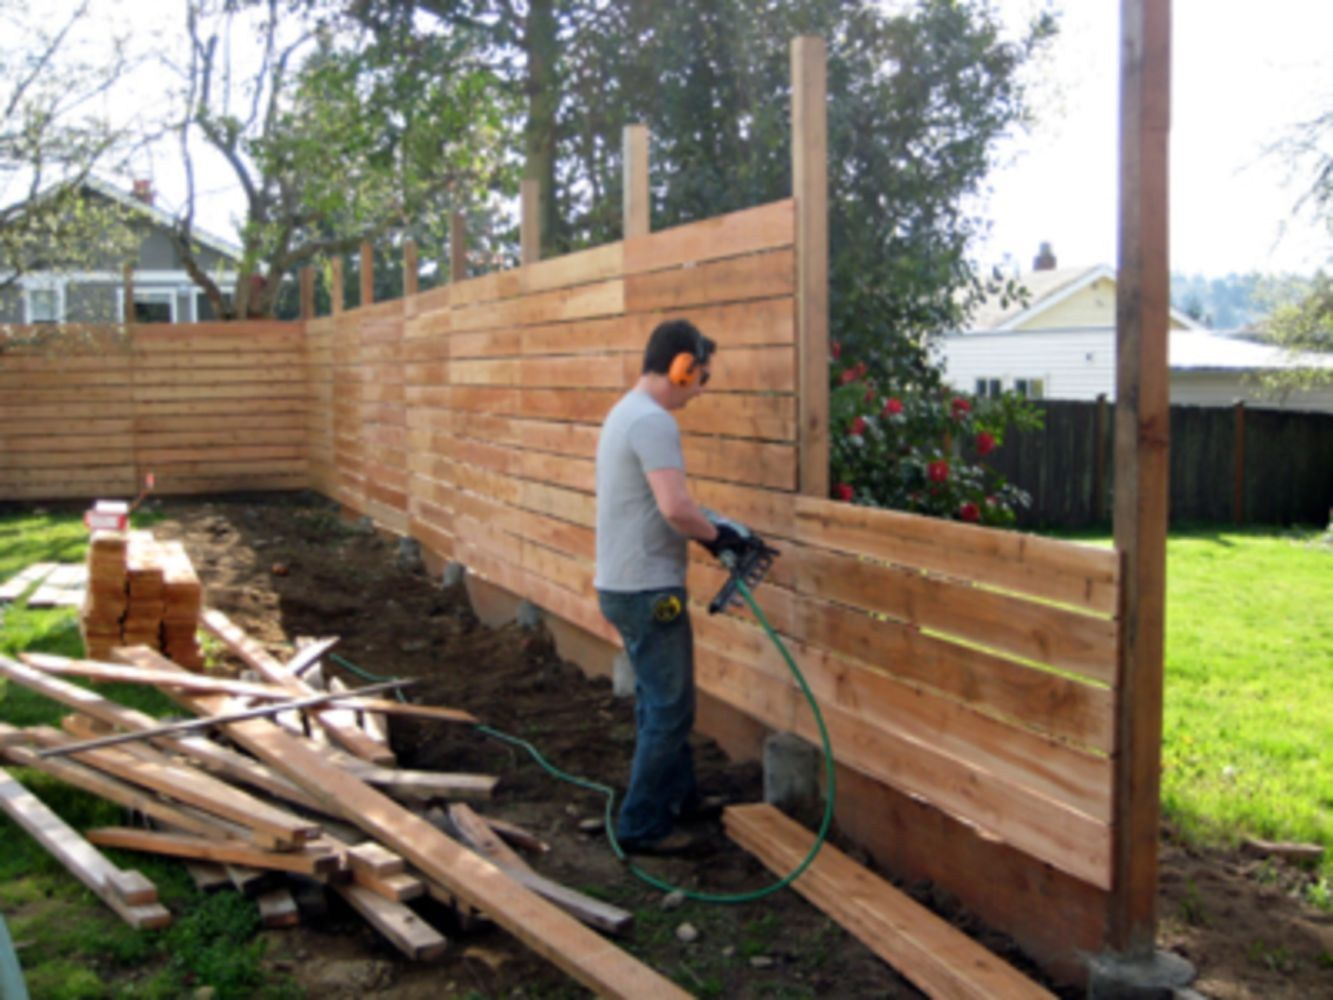 cheap diy privacy fence ideas 53 outside diy privacy fence backyard fences horizontal fence. Black Bedroom Furniture Sets. Home Design Ideas